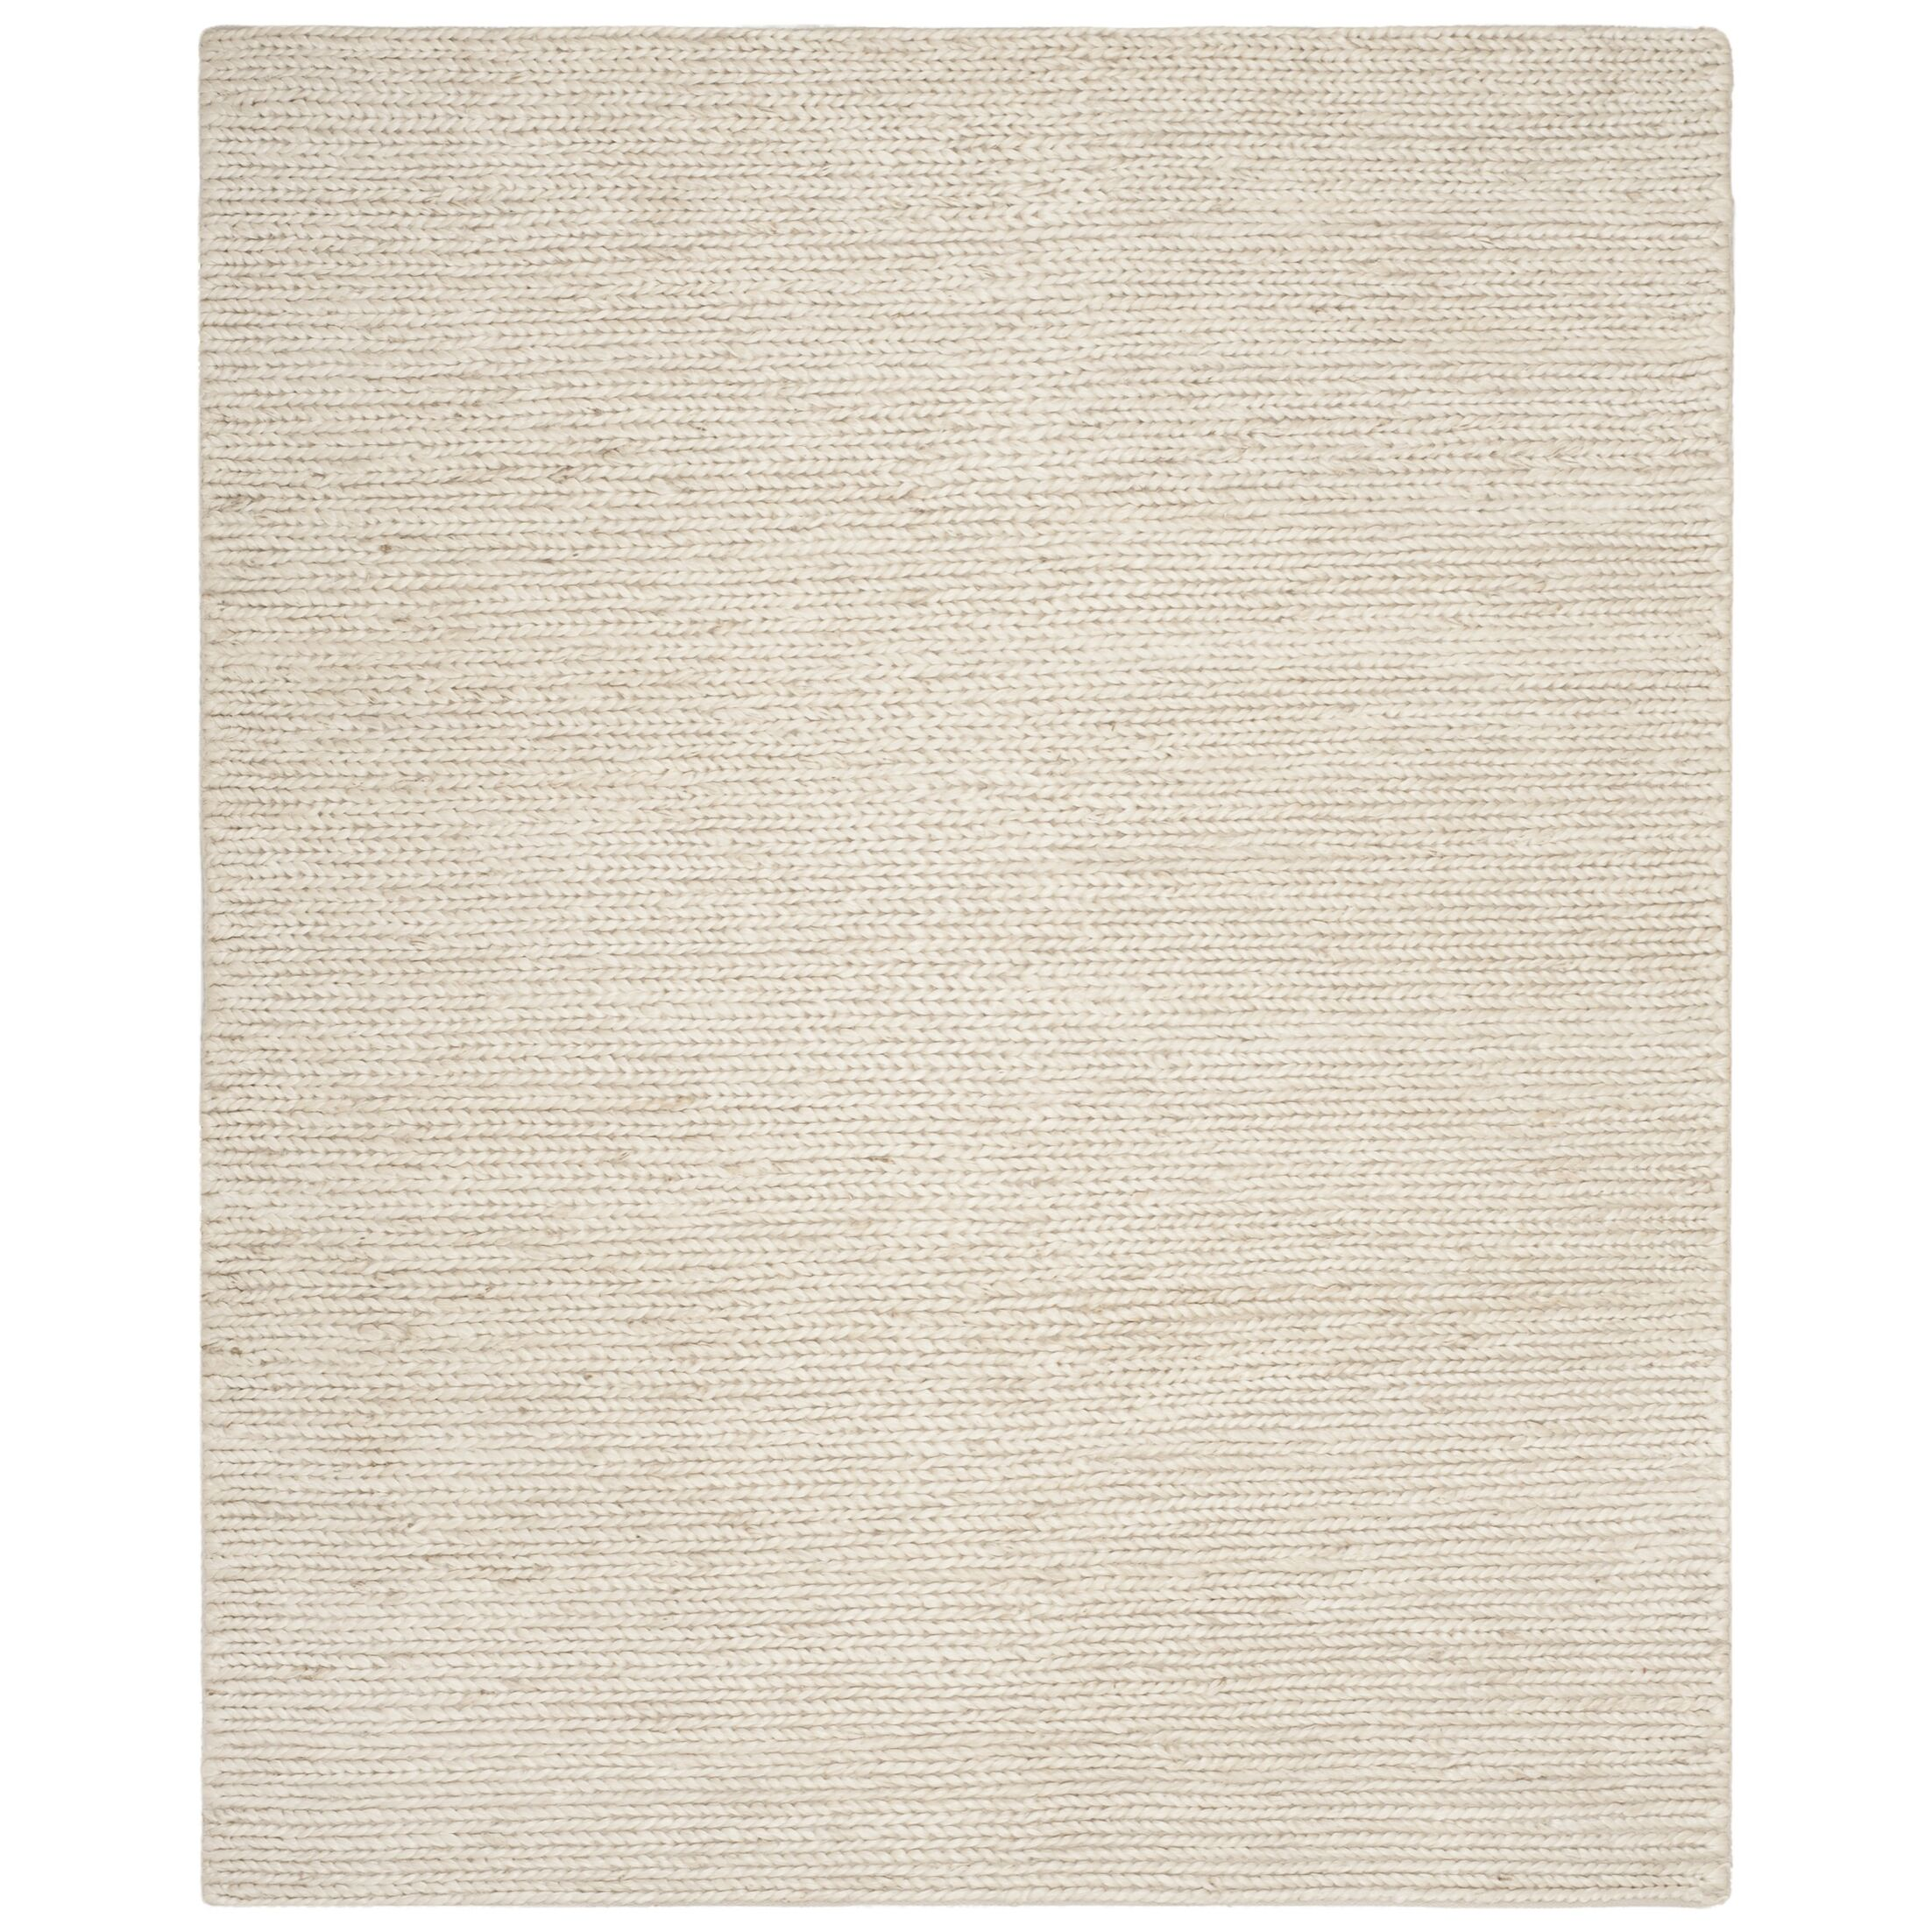 Pennsburg Fiber Hand-Woven Ivory Area Rug Rug Size: Rectangle 6' x 9'